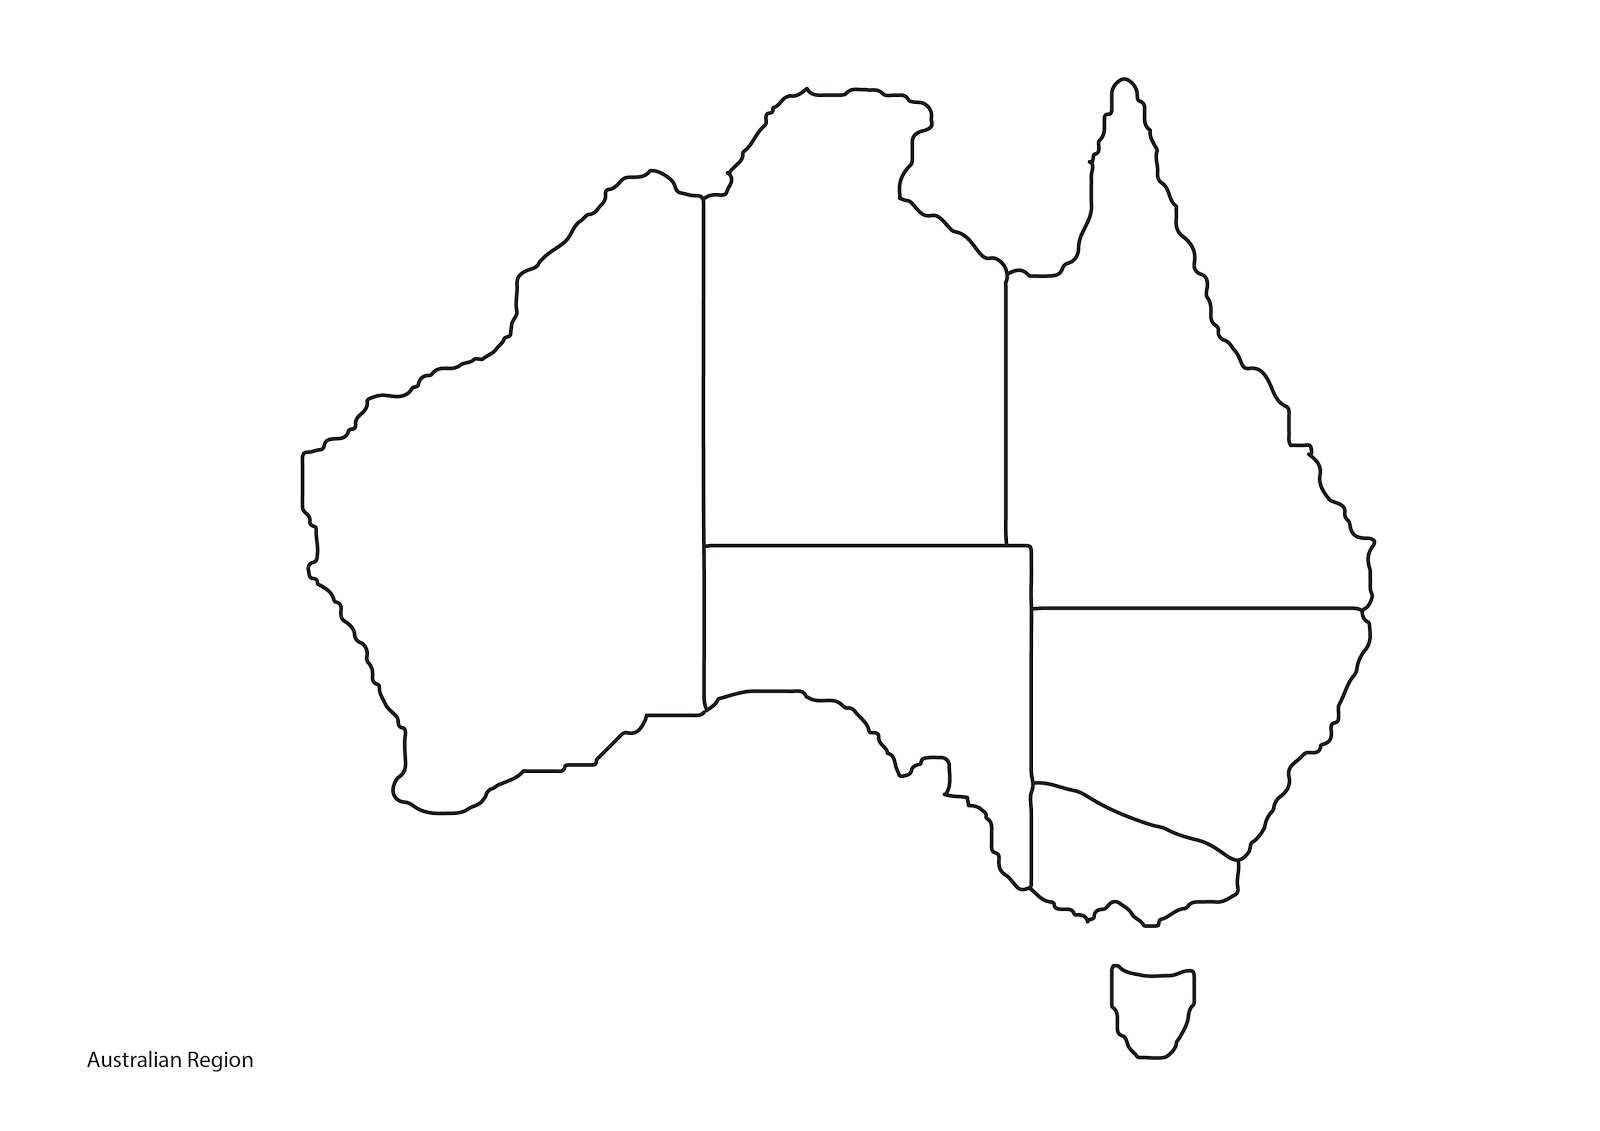 Australian Region Blank Map (Printable) | Hosted Files